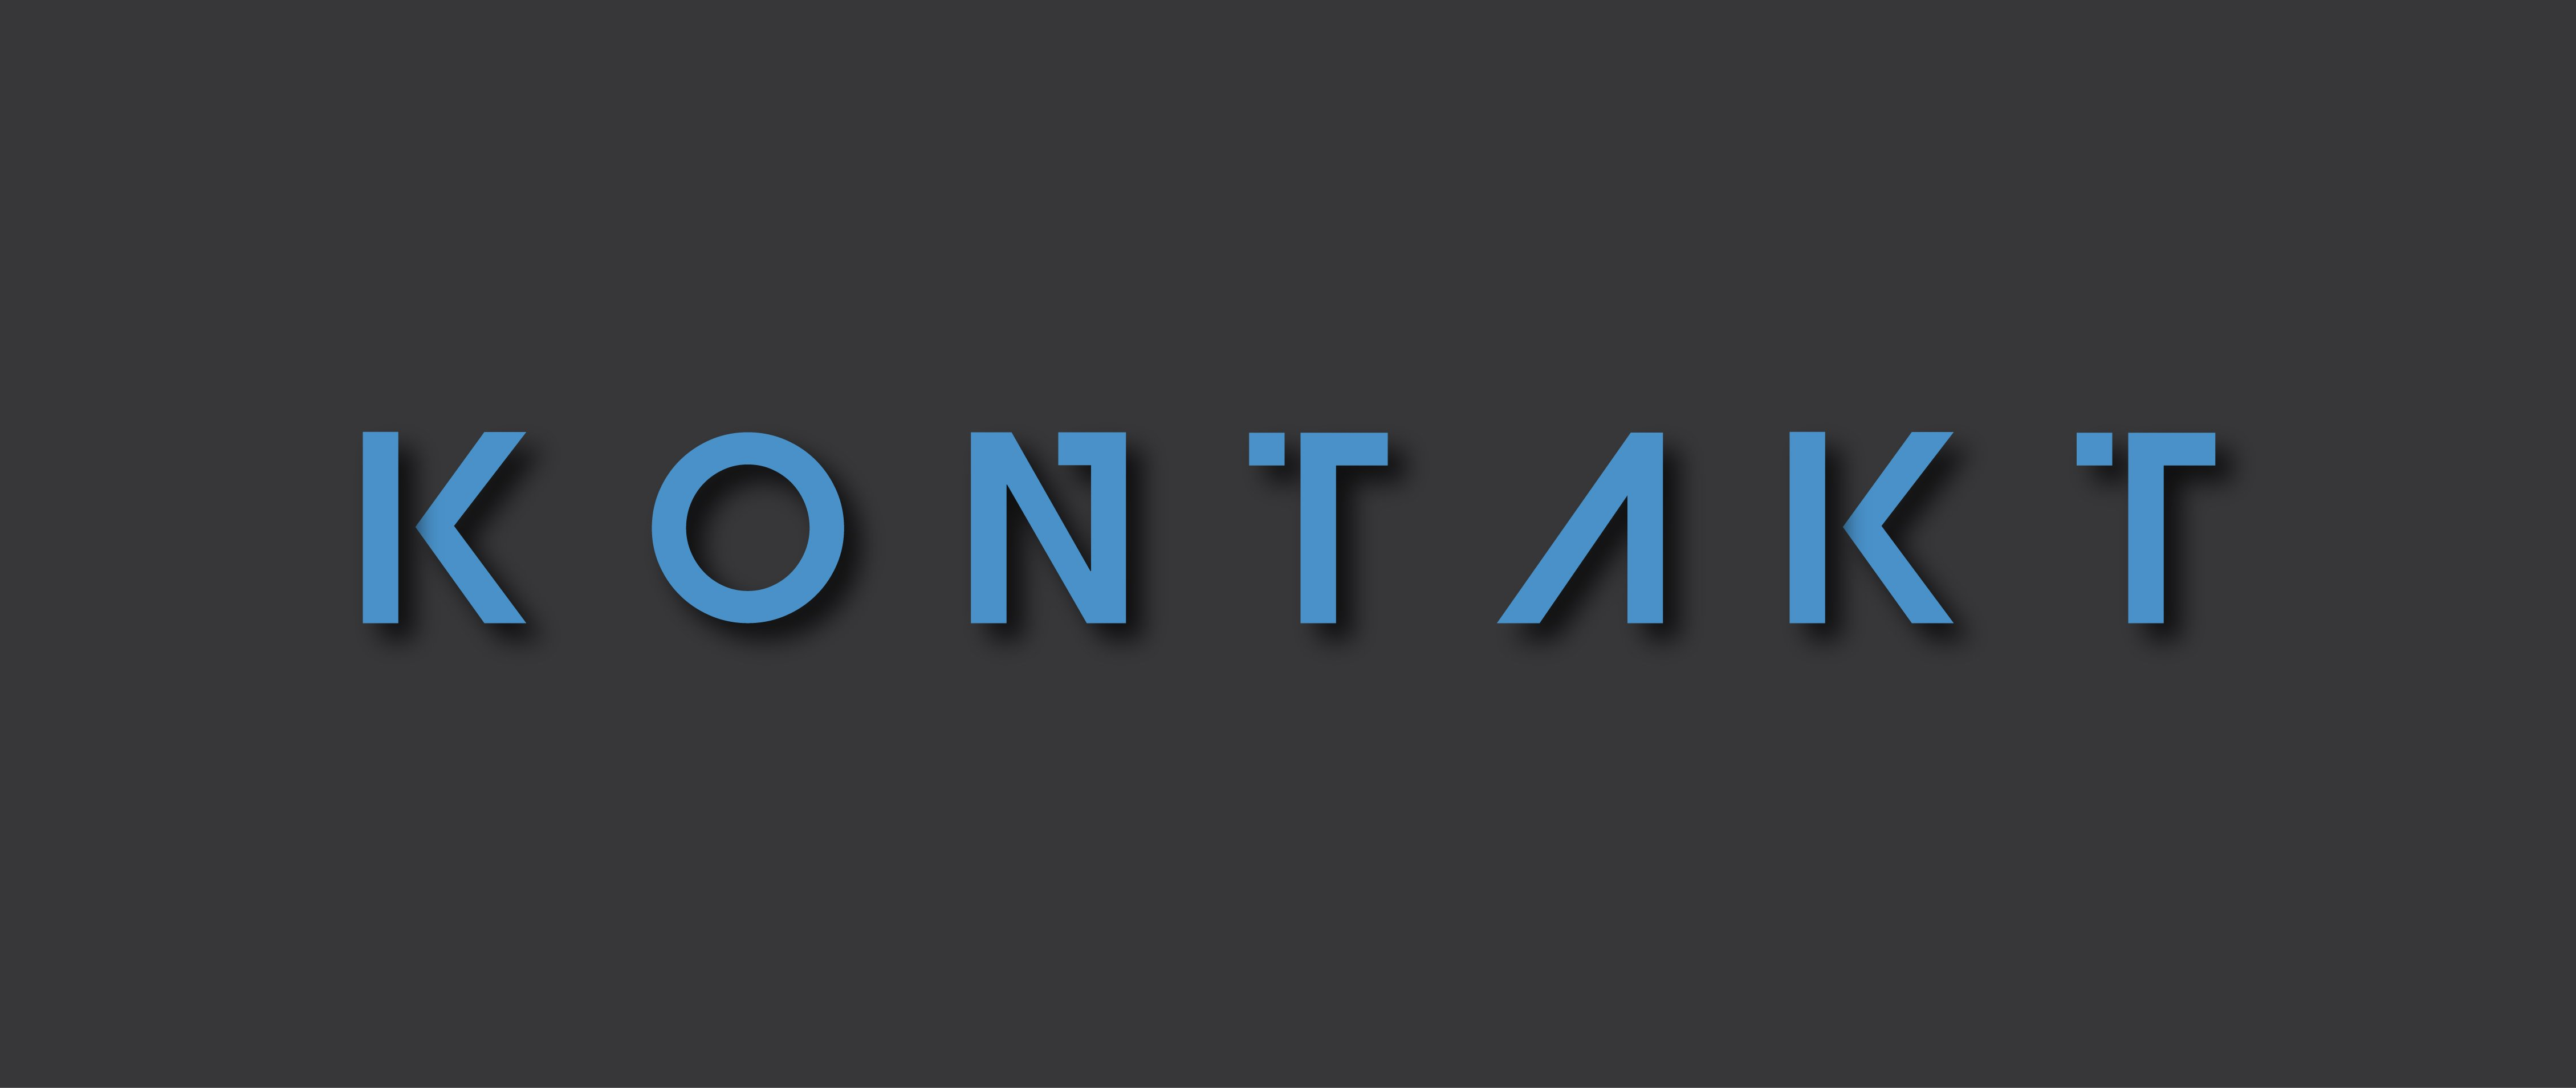 #1 Premier Maple Ridge SEO Expert & Internet Marketing Agency - Kontakt Digital